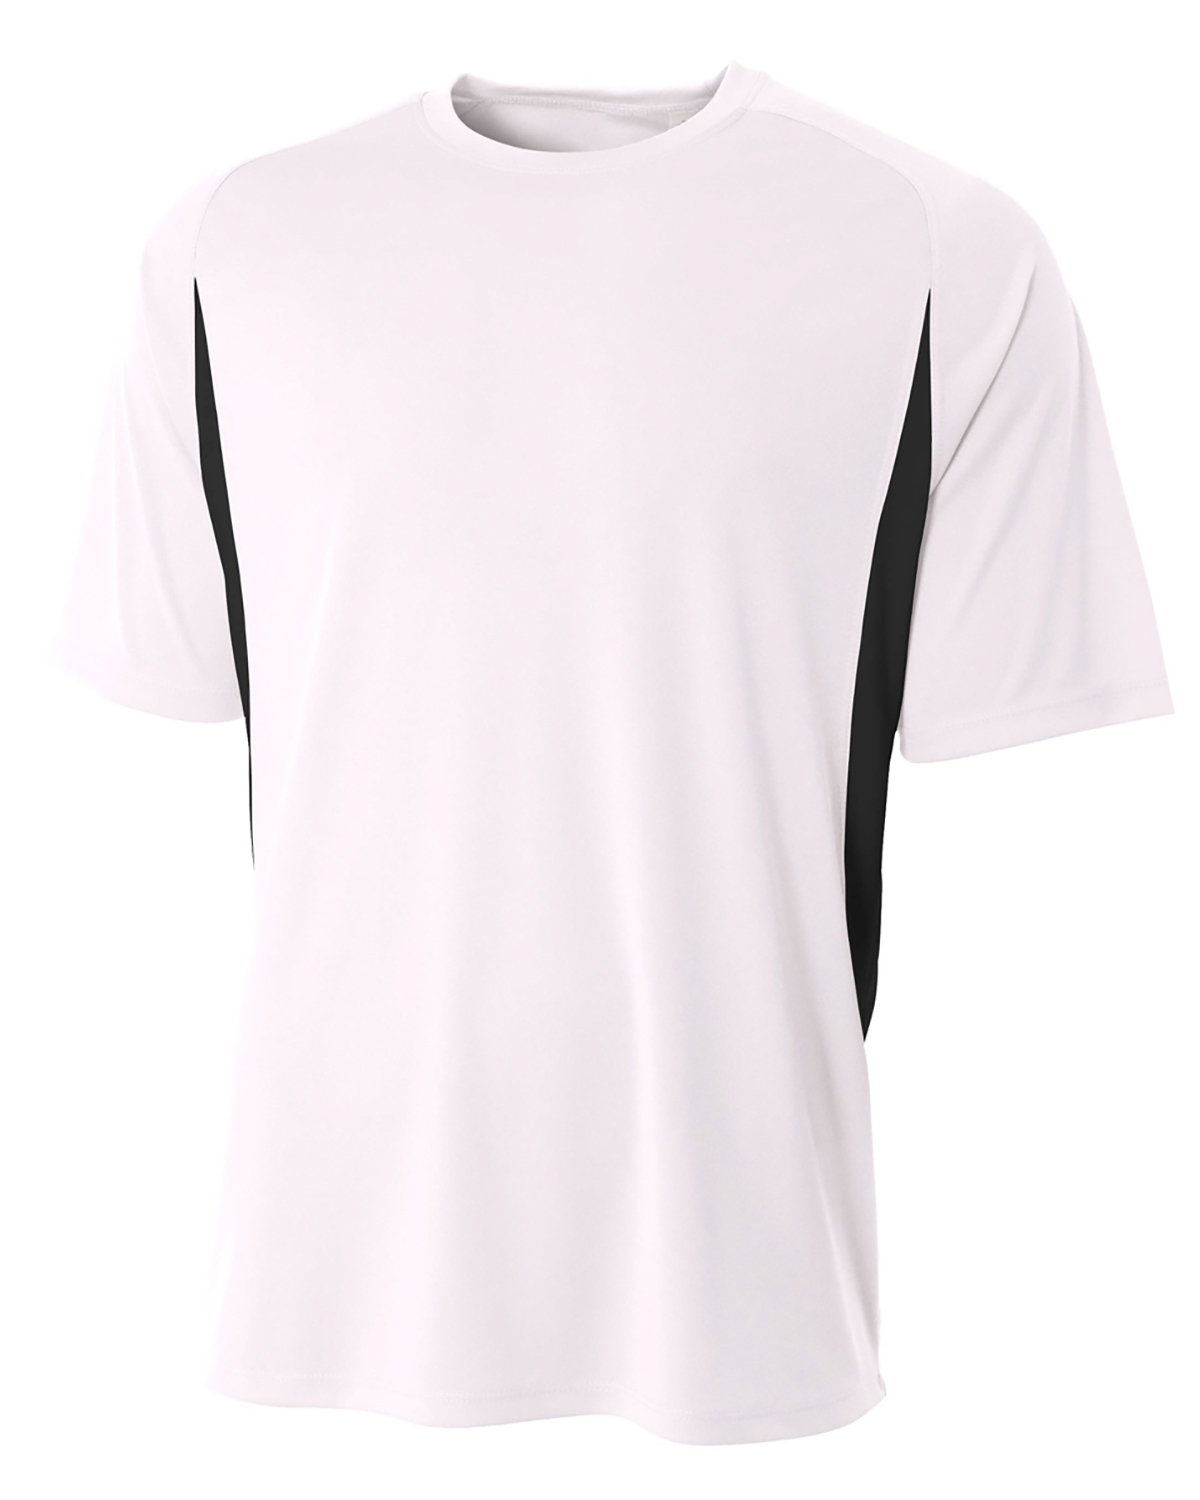 A4 Youth Cooling Performance Color Blocked T-Shirt WHITE/ BLACK